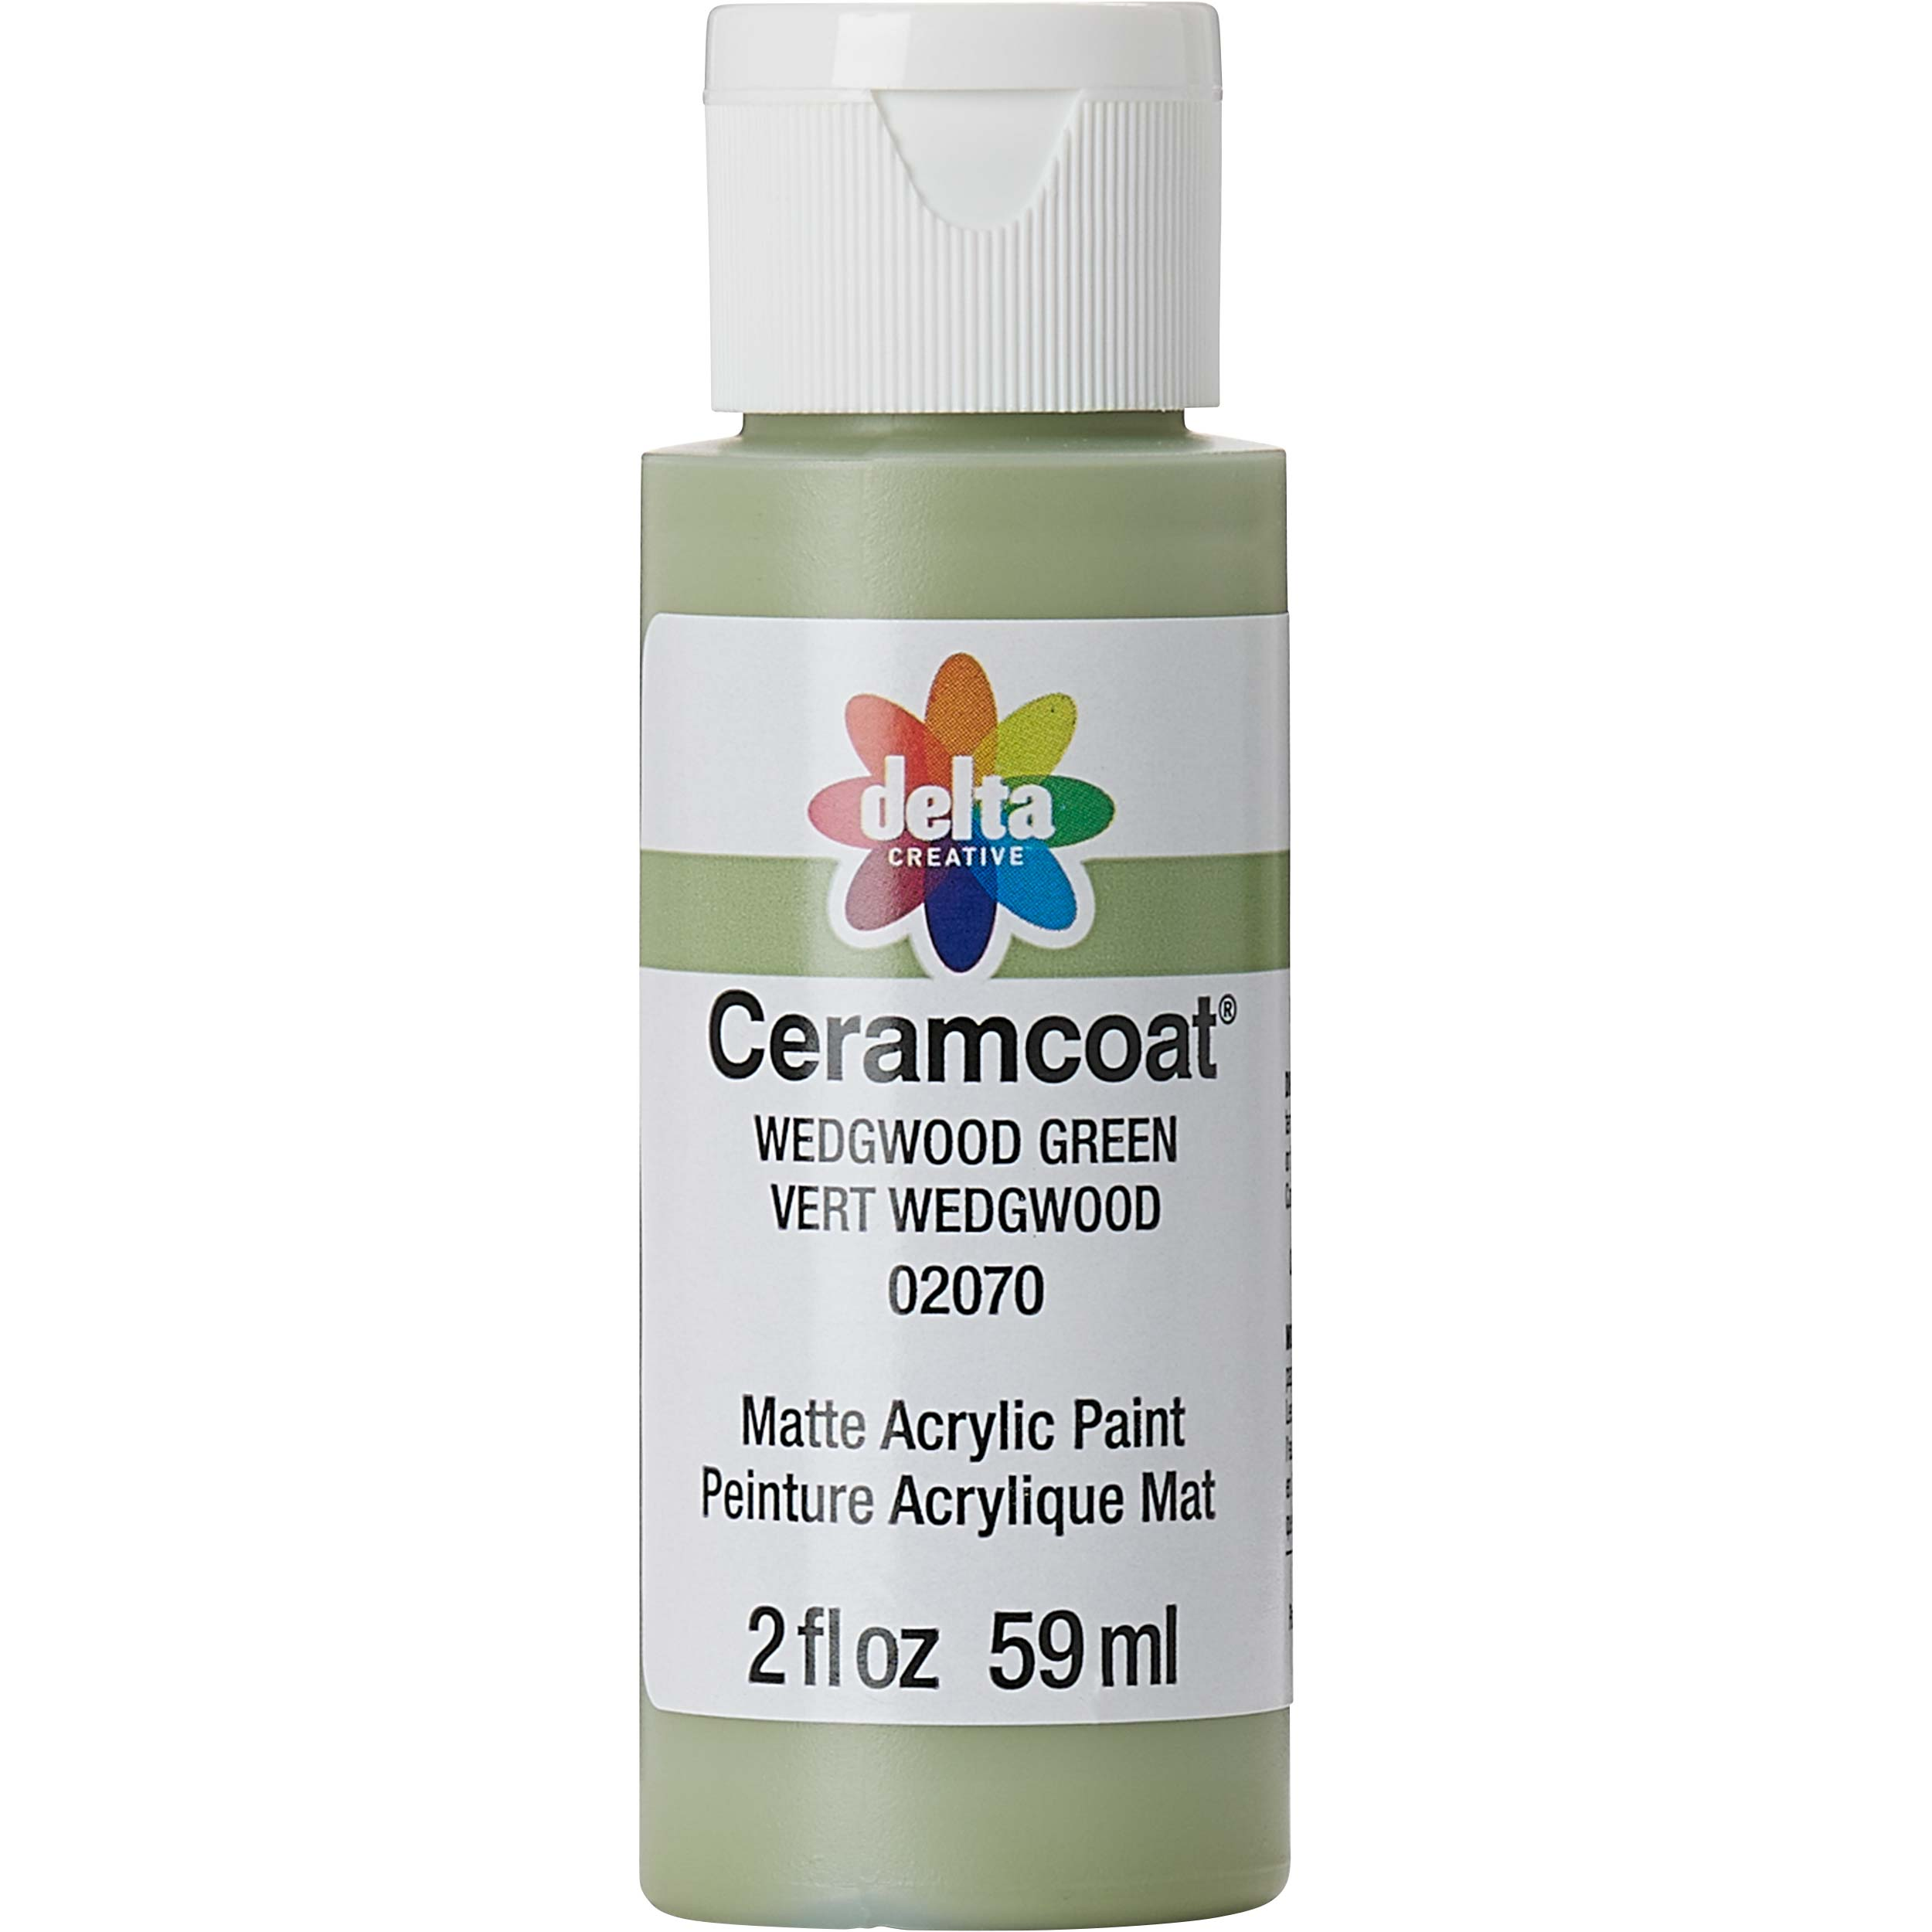 Delta Ceramcoat ® Acrylic Paint - Wedgwood Green, 2 oz. - 020700202W